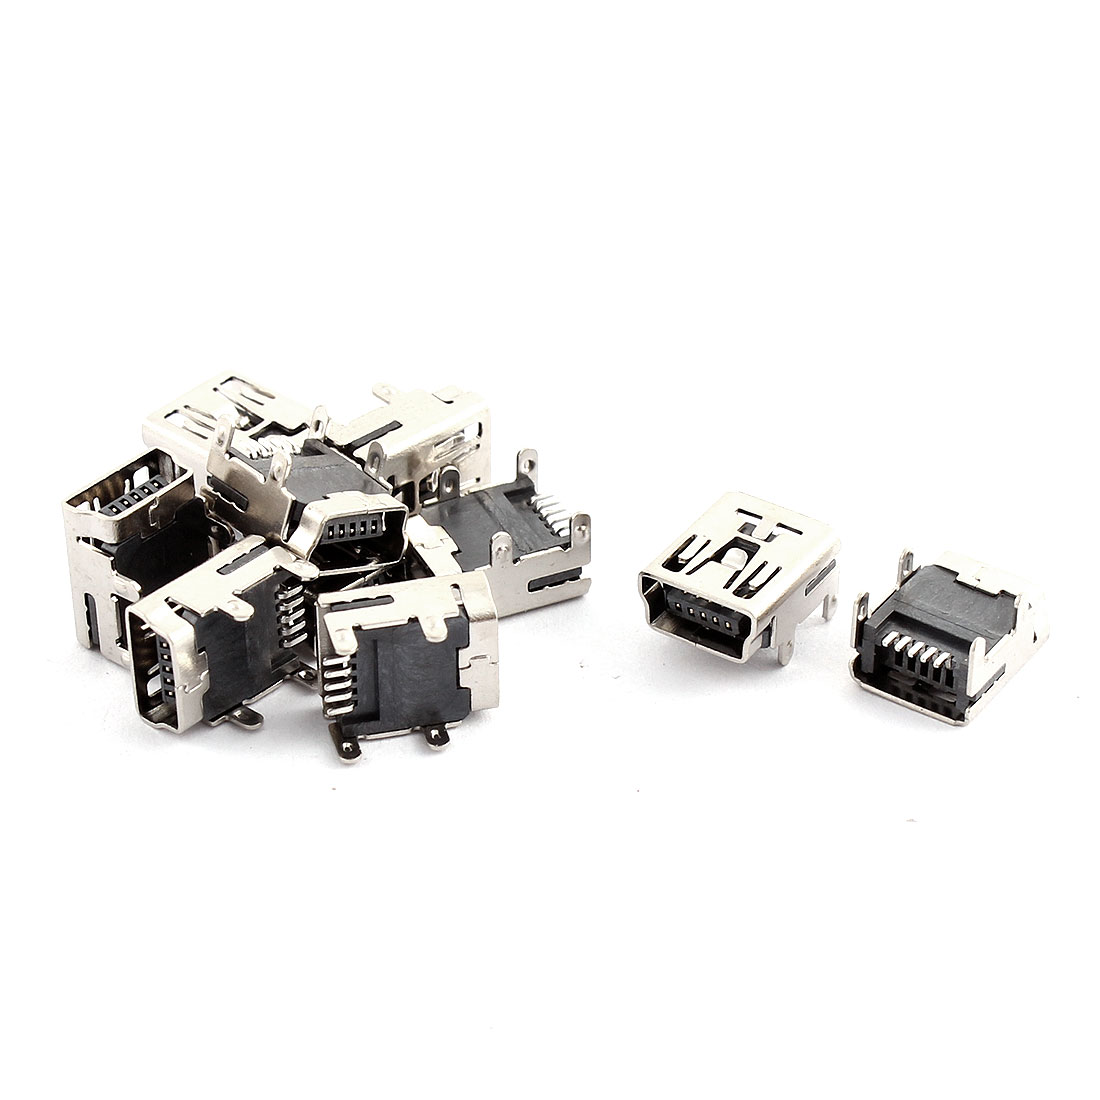 10 Pcs Mini USB Type B Female Socket 5-Pin Jack Connector Adapter